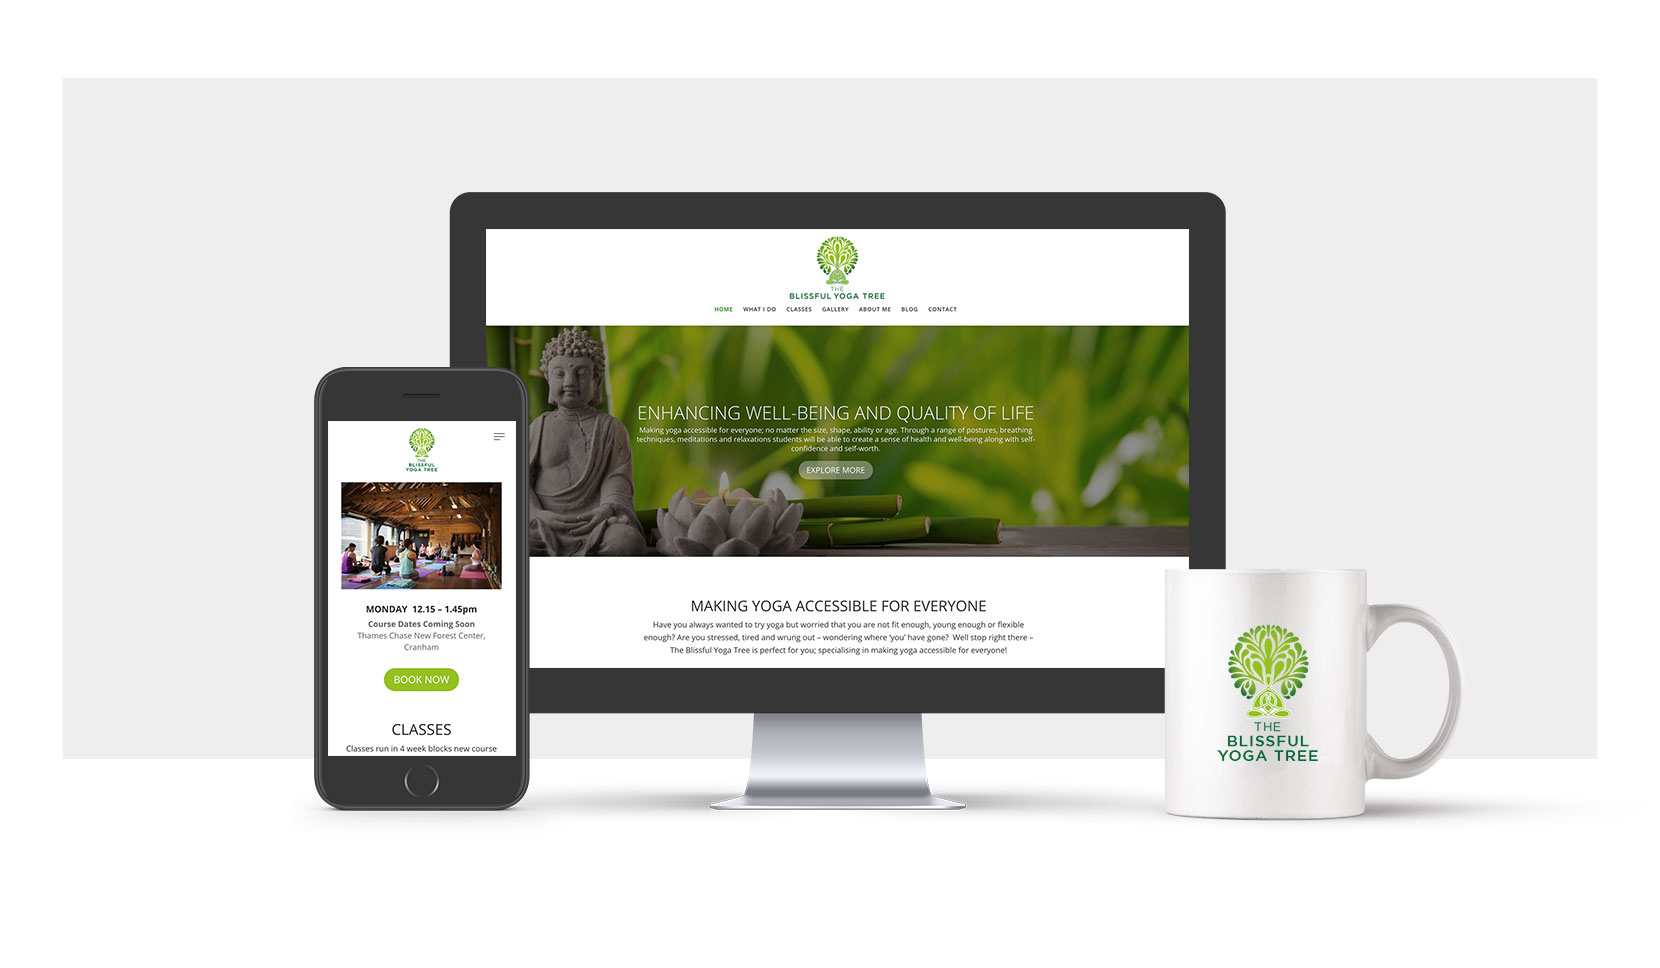 The Blissful Yoga Tree Responsive Website Design